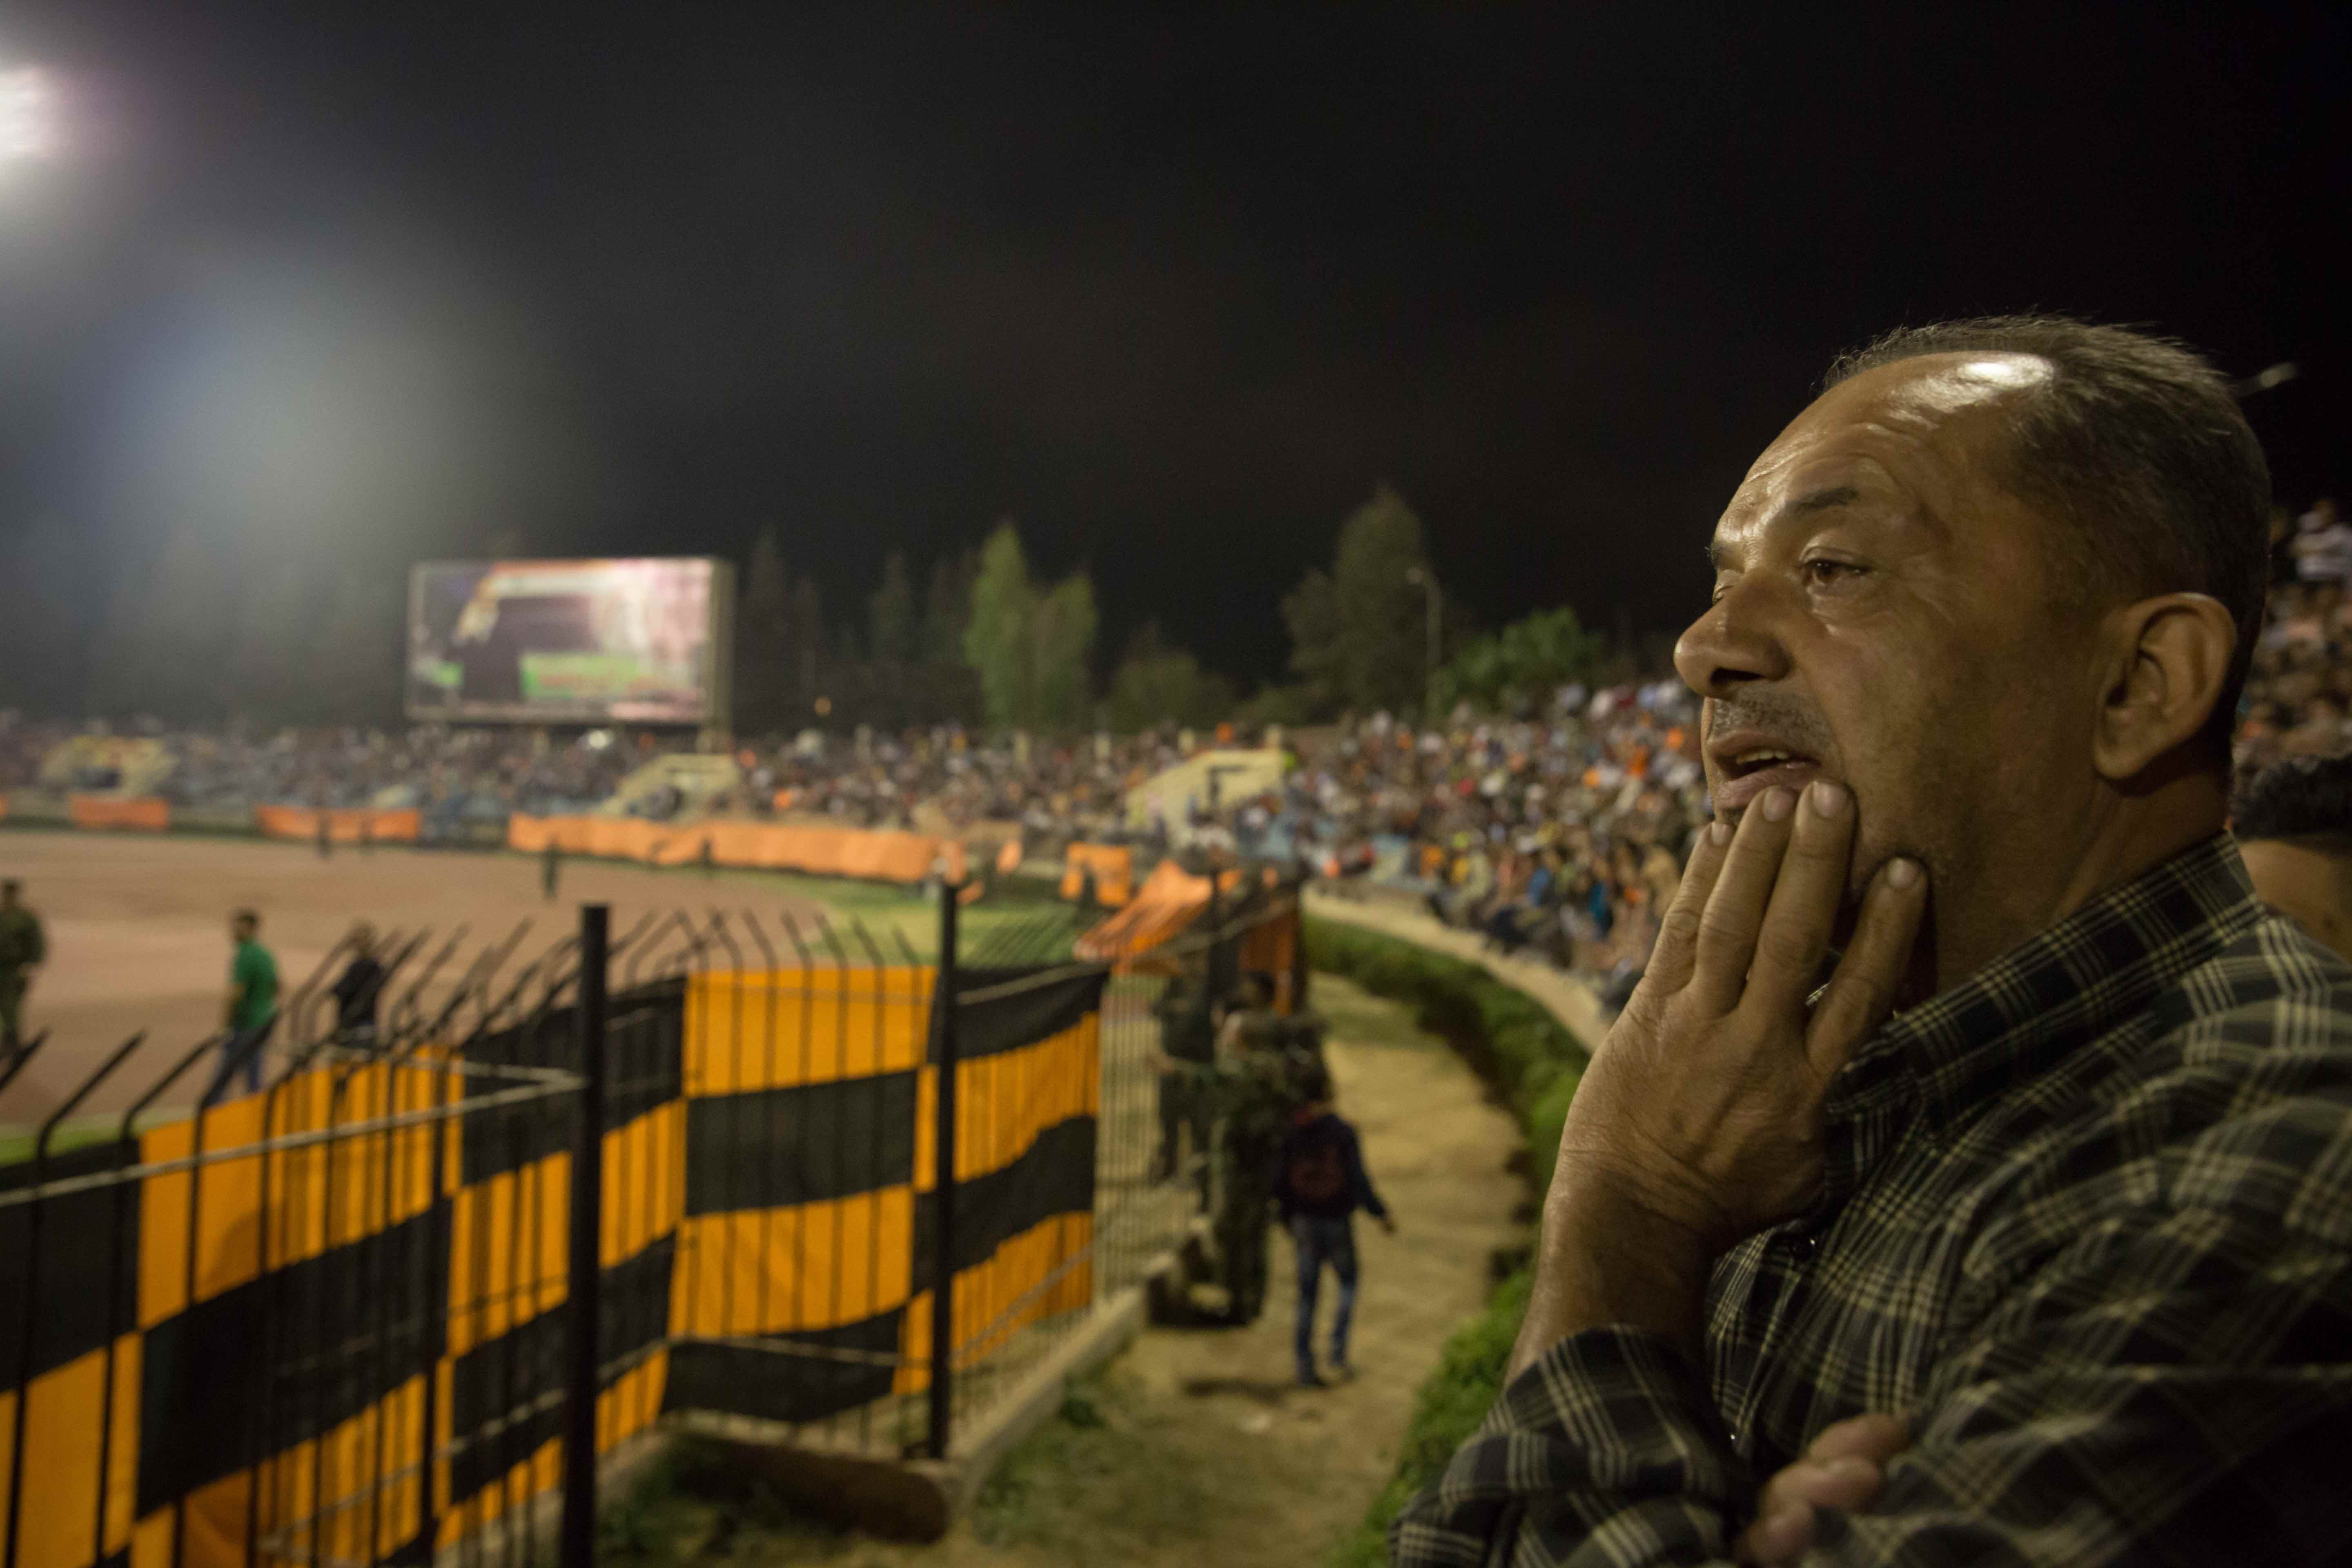 Fouad Ibrahim, a 55-year-old local who has been attending matches since he was 15, said the routine of football has brought him comfort during the war.